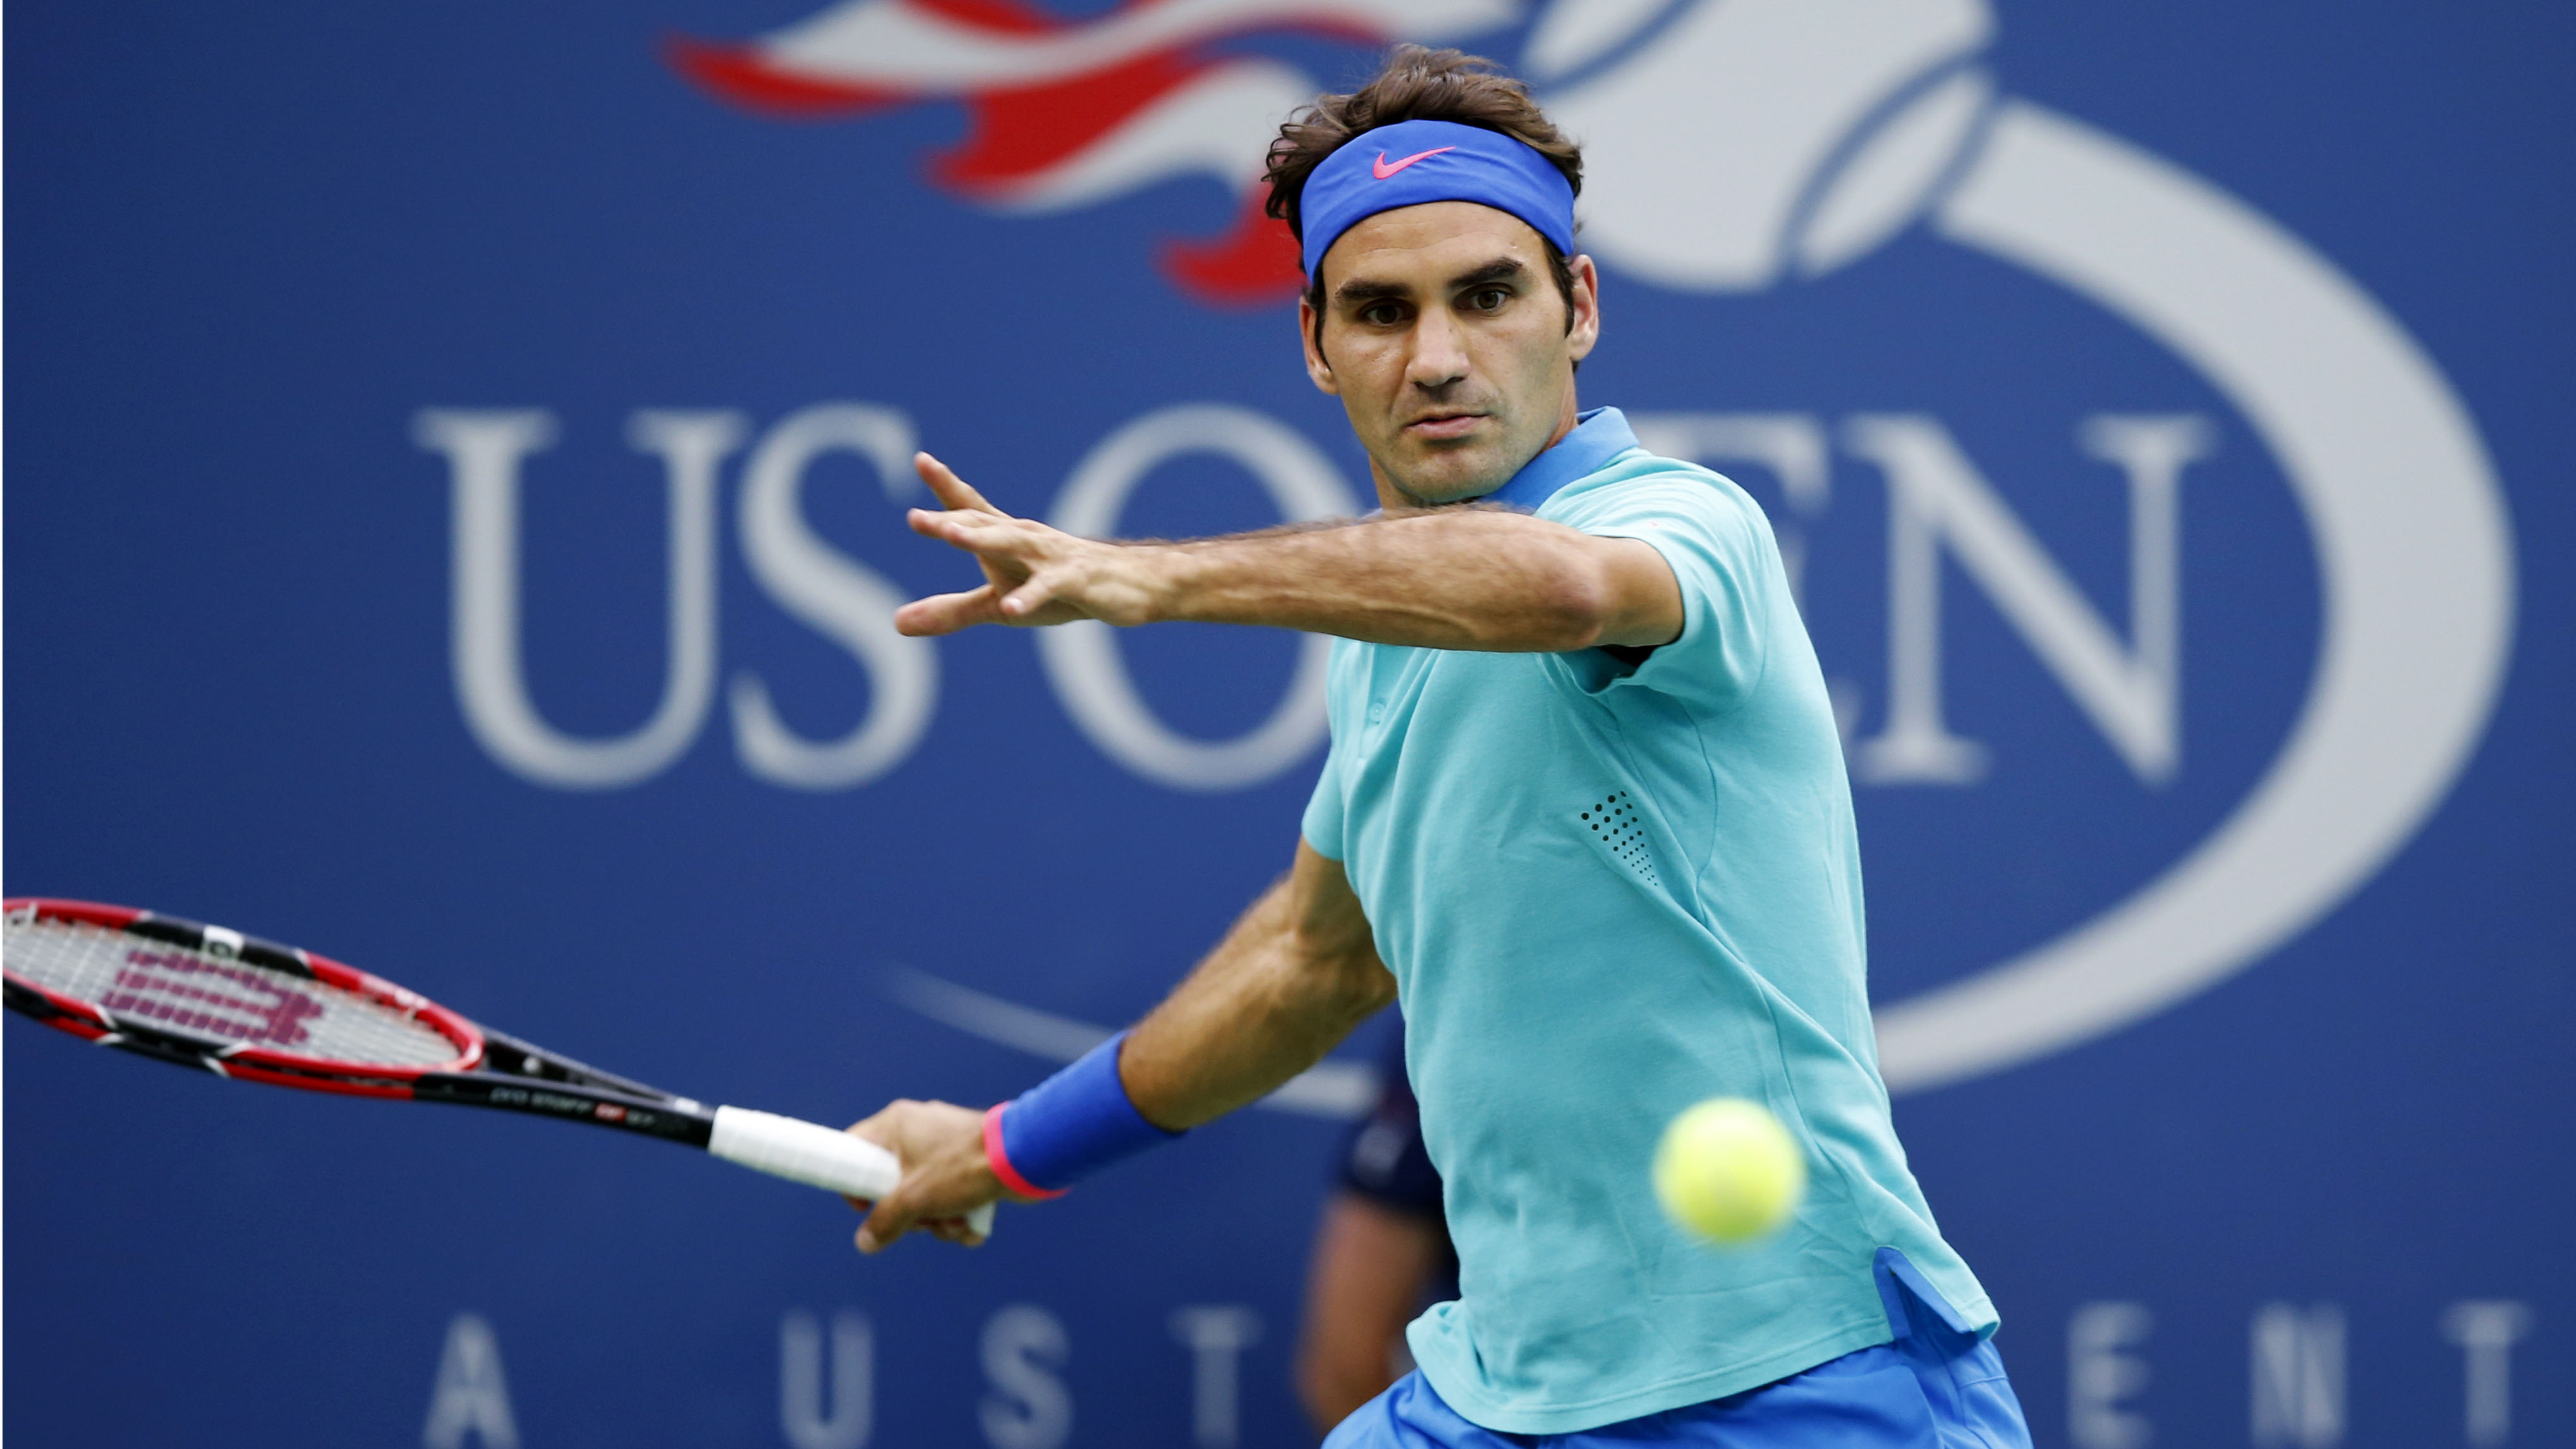 Roger Federer tries to end decade long drought at U.S. Open - Sportsnet.ca